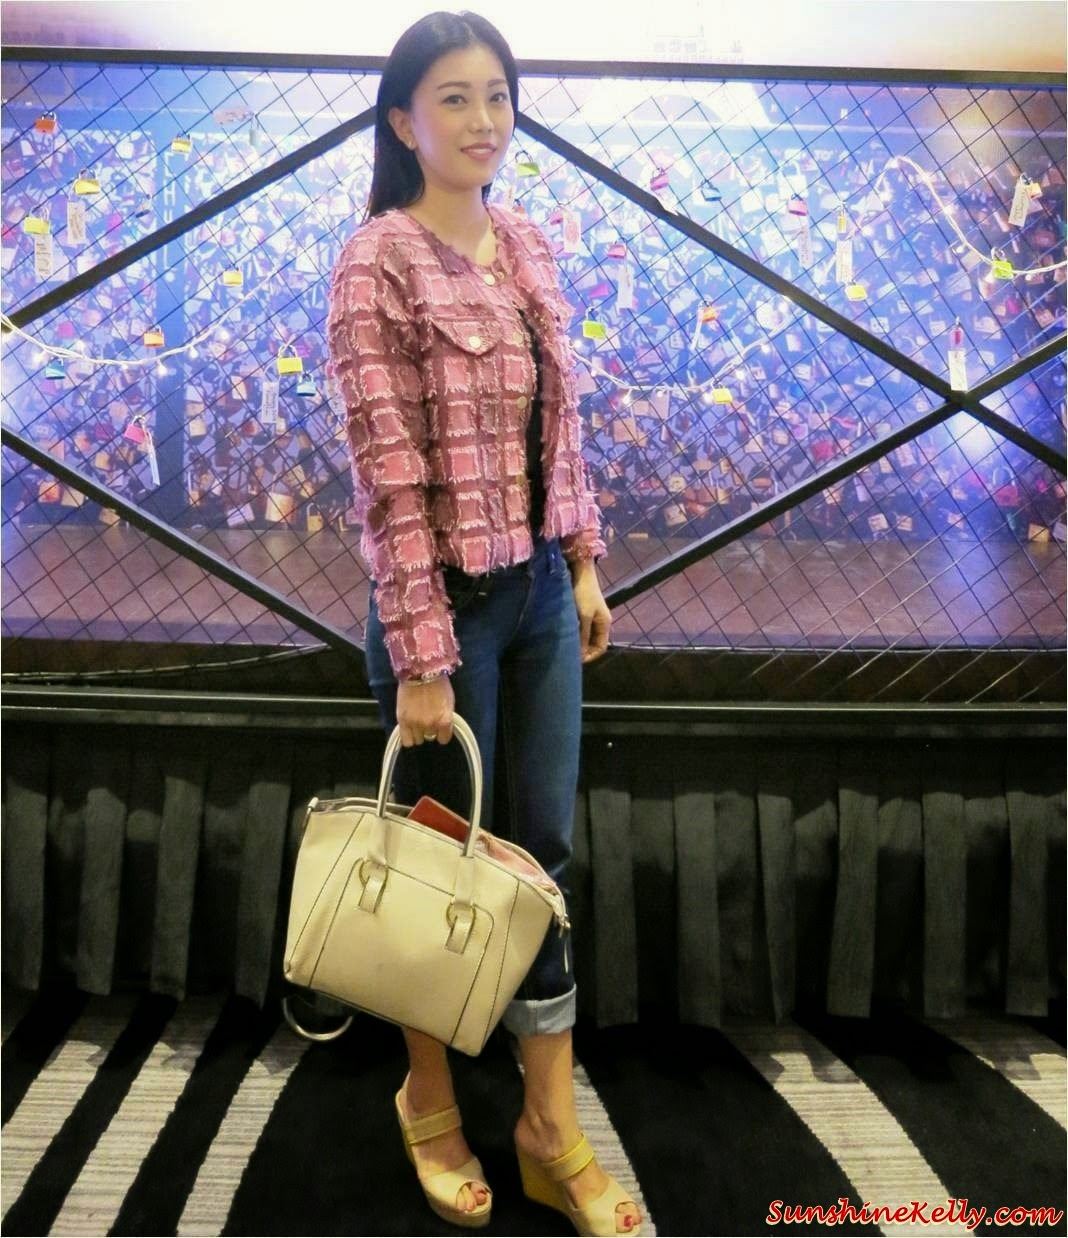 Pink Jacket from Corshacomo, Pink Jacket from Corshacomo, pink jacket, Corshacomo, Dong JK, OOTD, Corshacomo, korean fashion trend, korean style, ulzzang style, corshacomo, Dong JK, OOTD, Corshacomo, korean fashion trend, korean style, ulzzang style